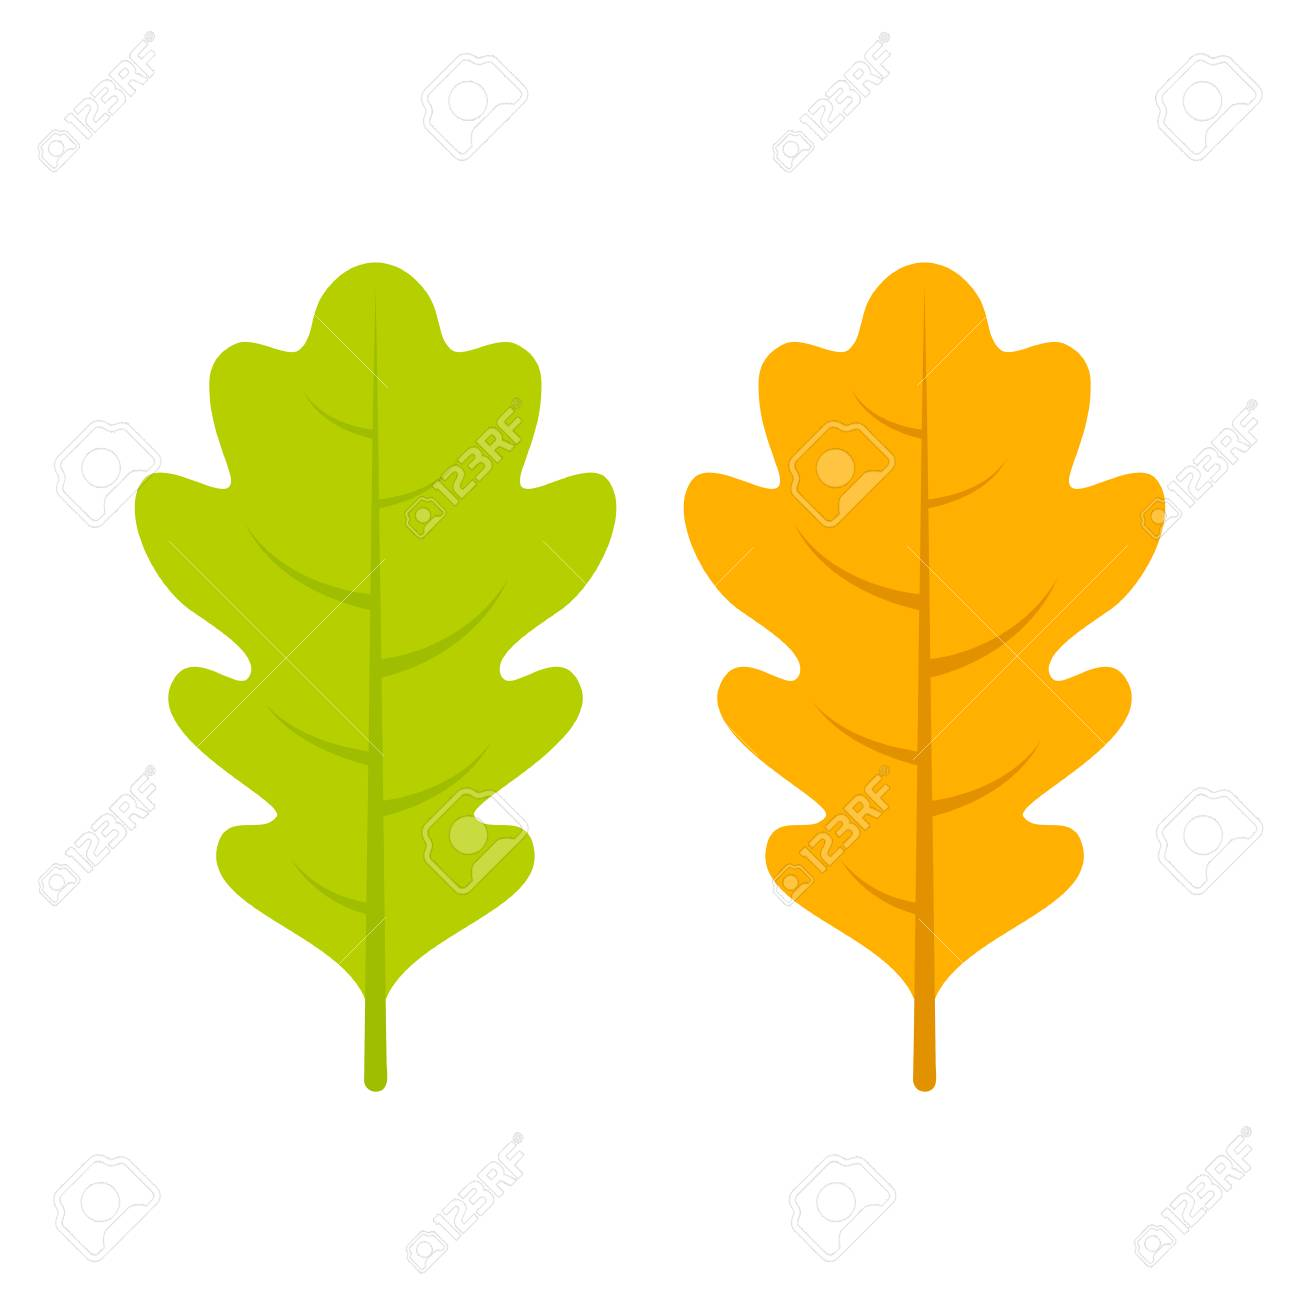 yellow and green oak leaf vector icon royalty free cliparts vectors rh 123rf com oak leaf vector file oak leaf vectorial